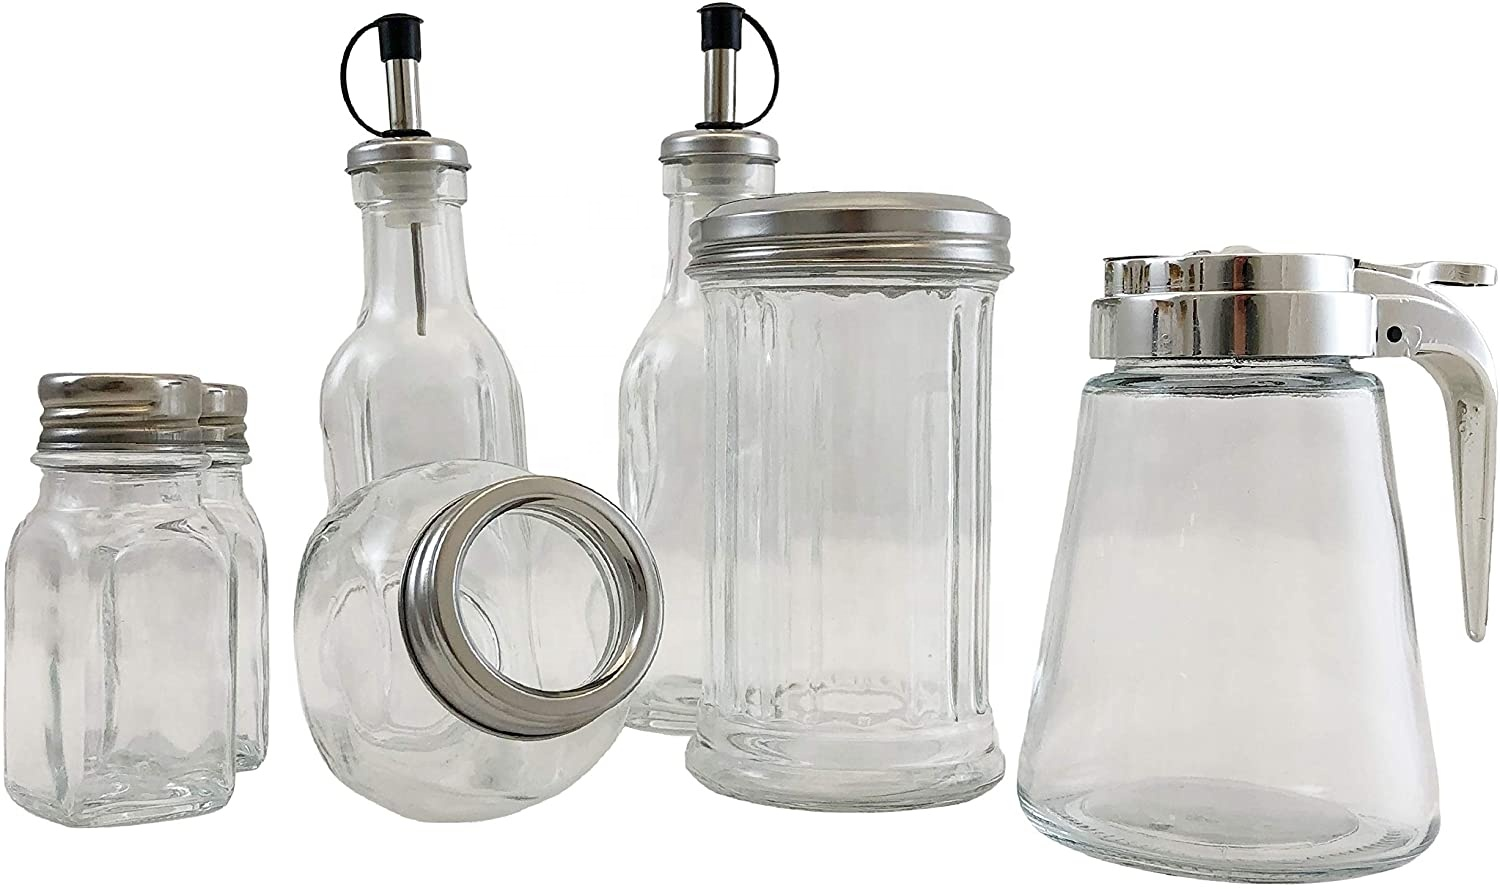 Manufacturer Retro Style Amazon Glass Sugar Dispenser Pourer Shaker canister Glass Jar with Stainless Steel Pour-Flap Lid wholes